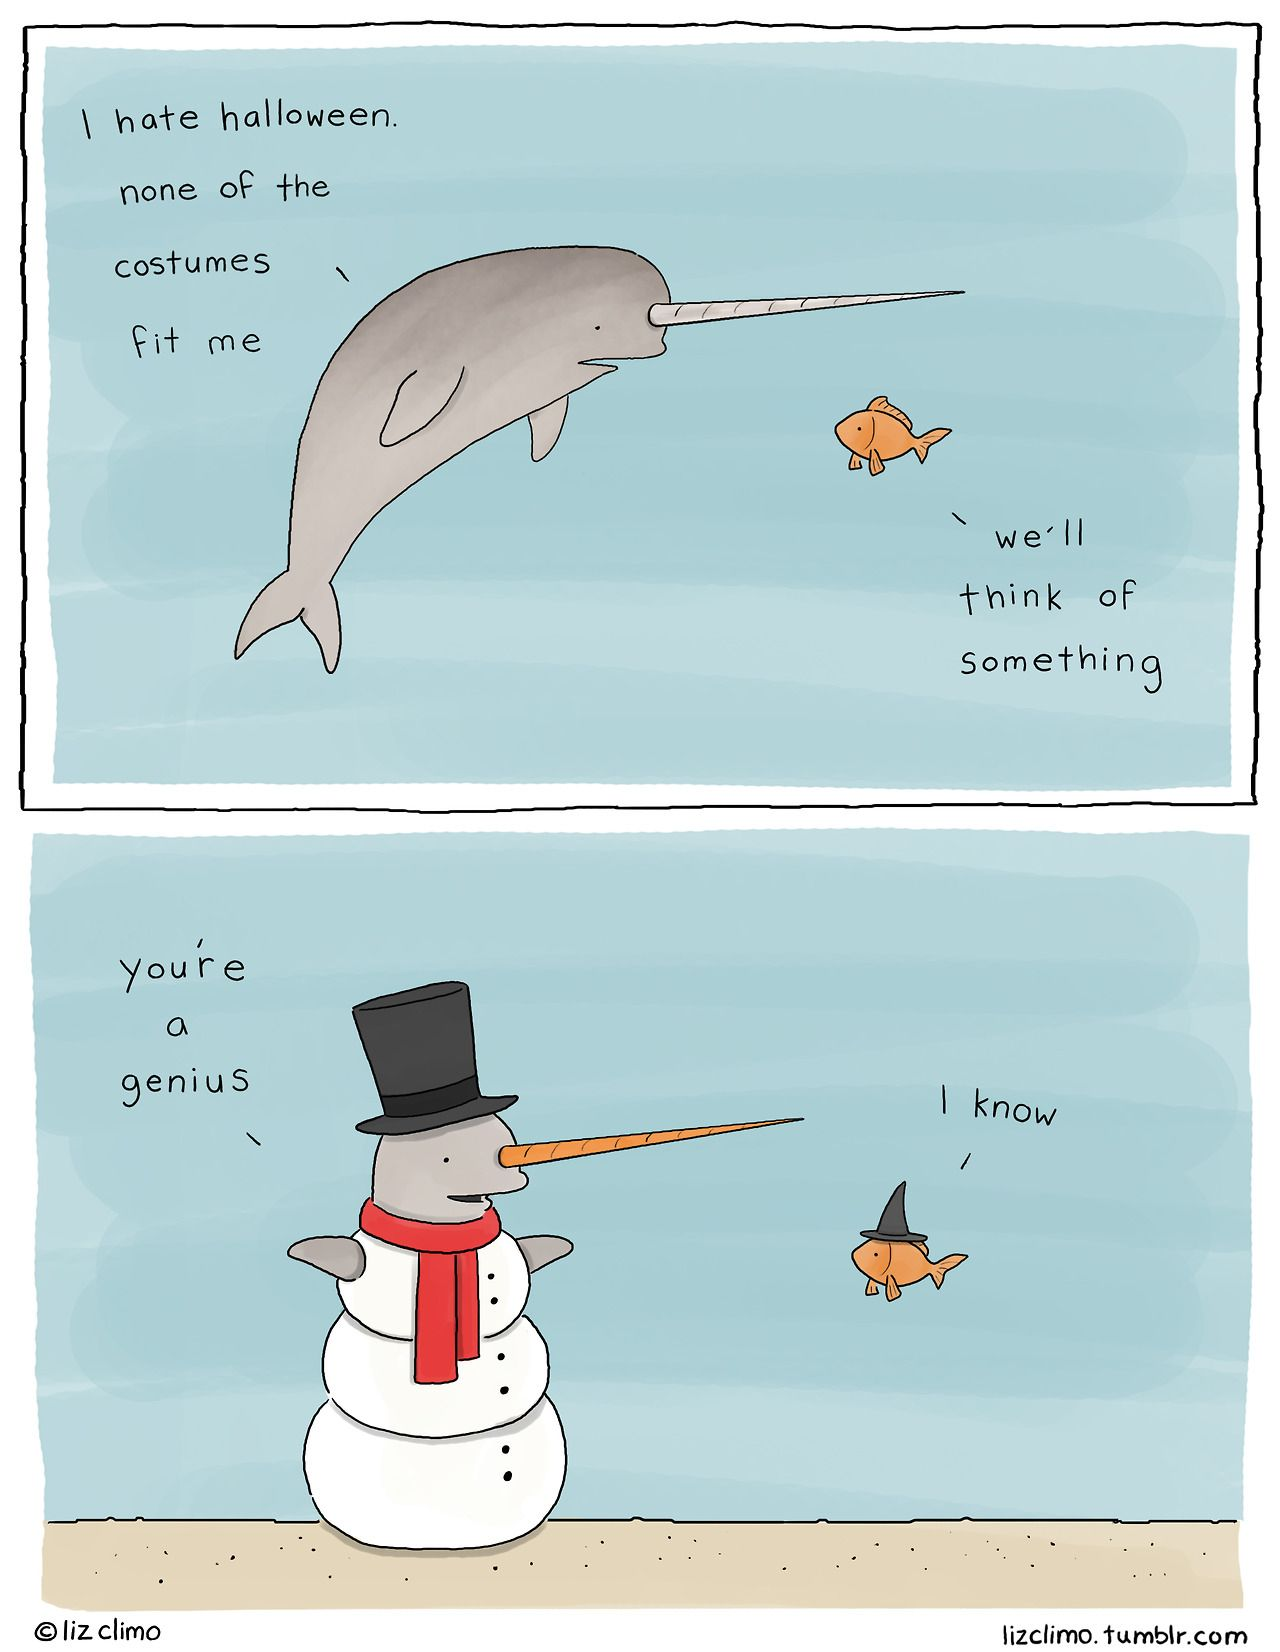 Narwhal and unicorn cartoon narwhal jokes funny pictures - Liz Climo Draws Comics Of Animals With Wry Senses Of Humor